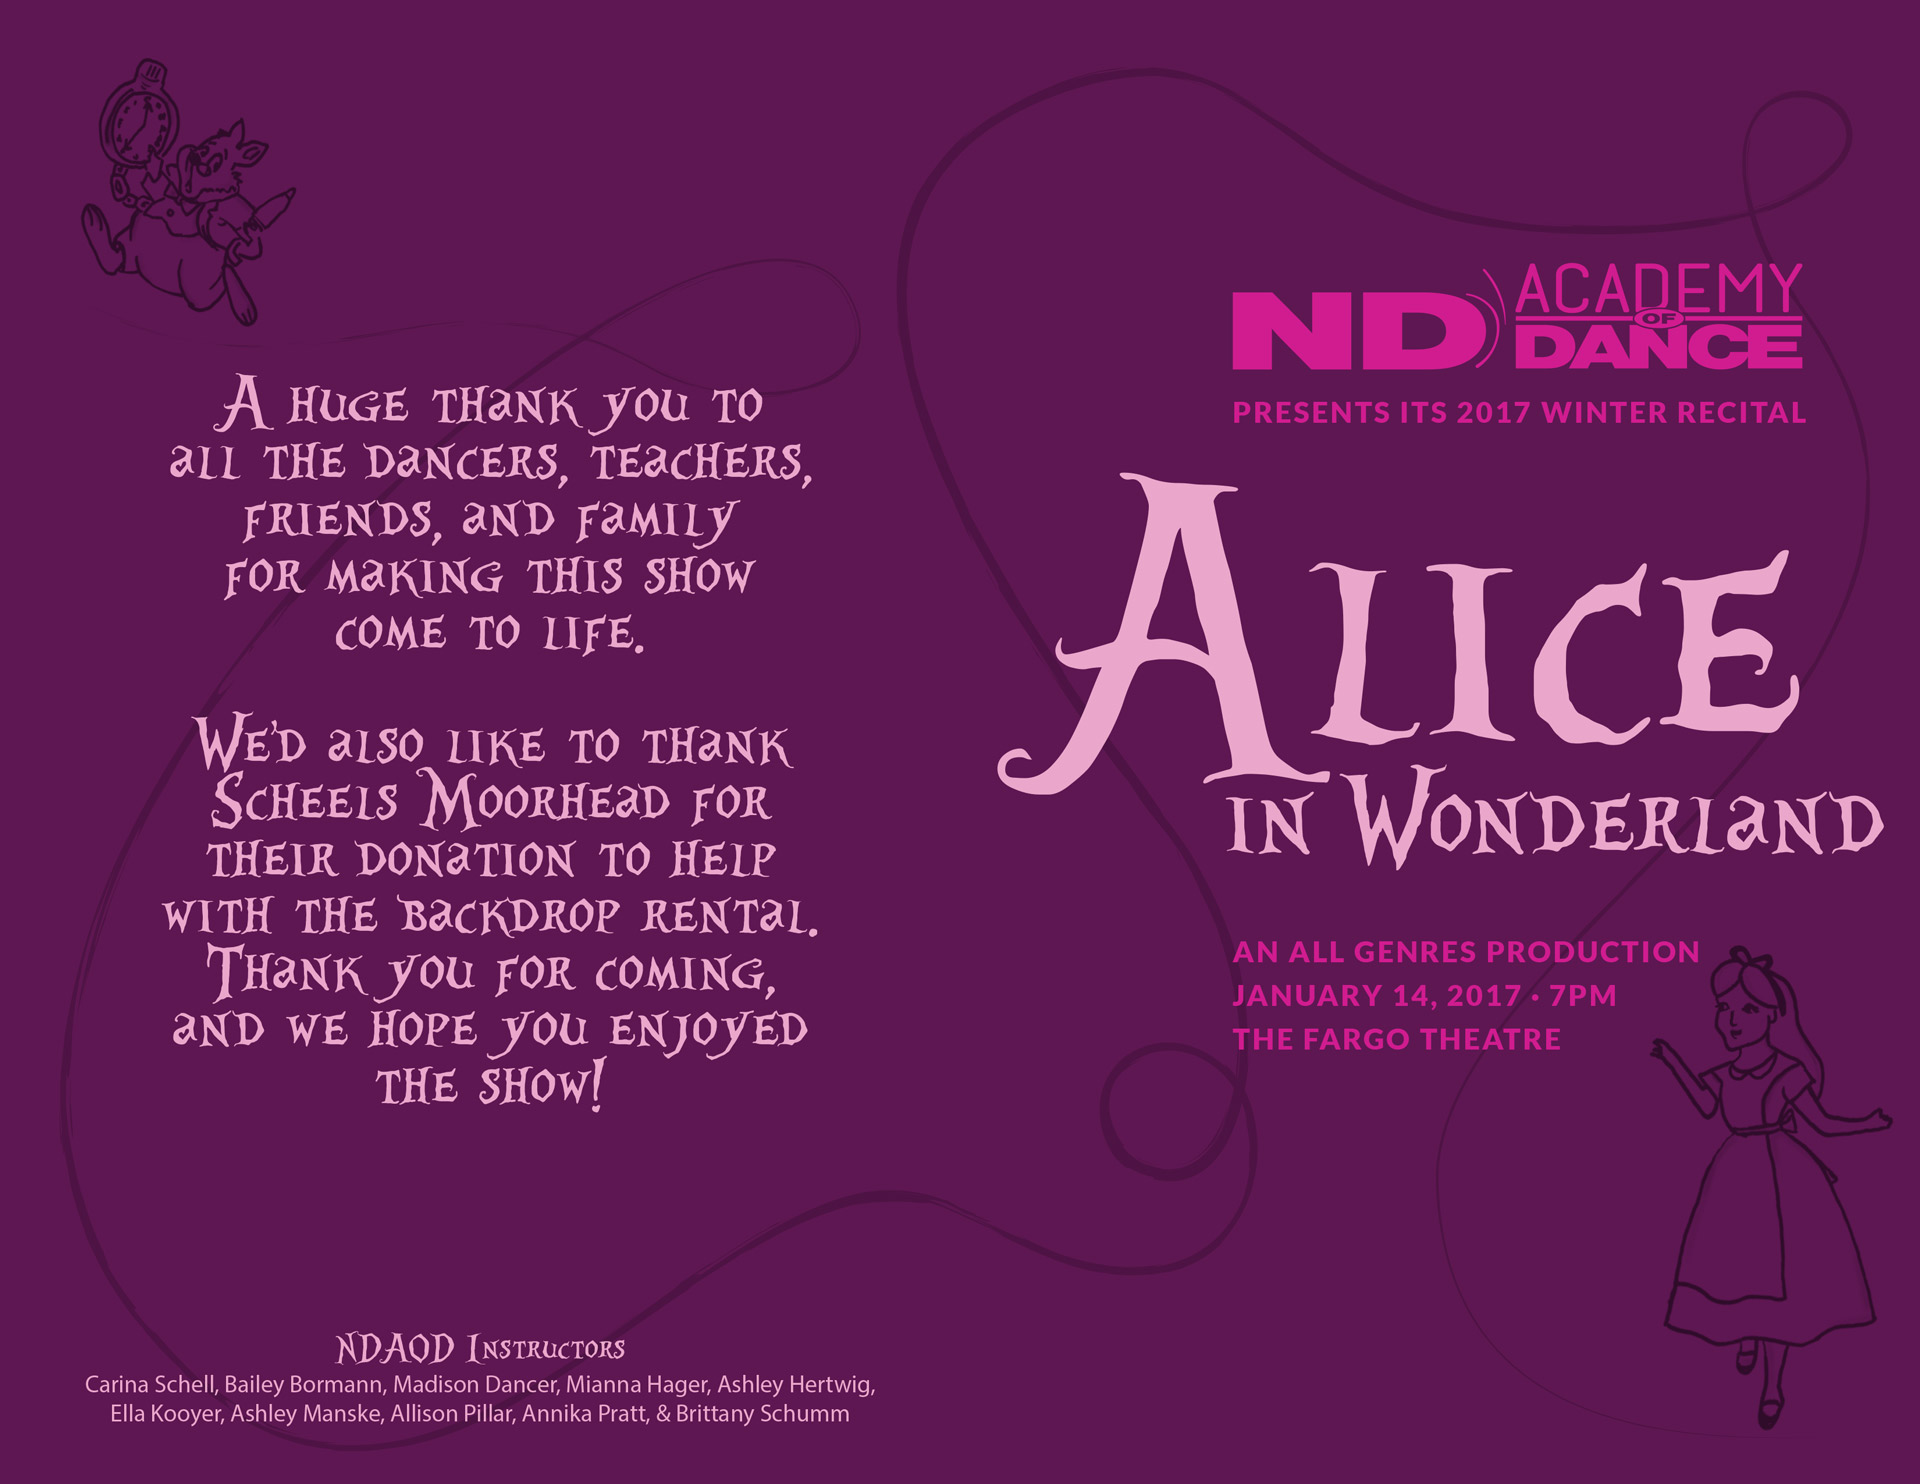 Purple outside cover of program for Alice and Wonderland